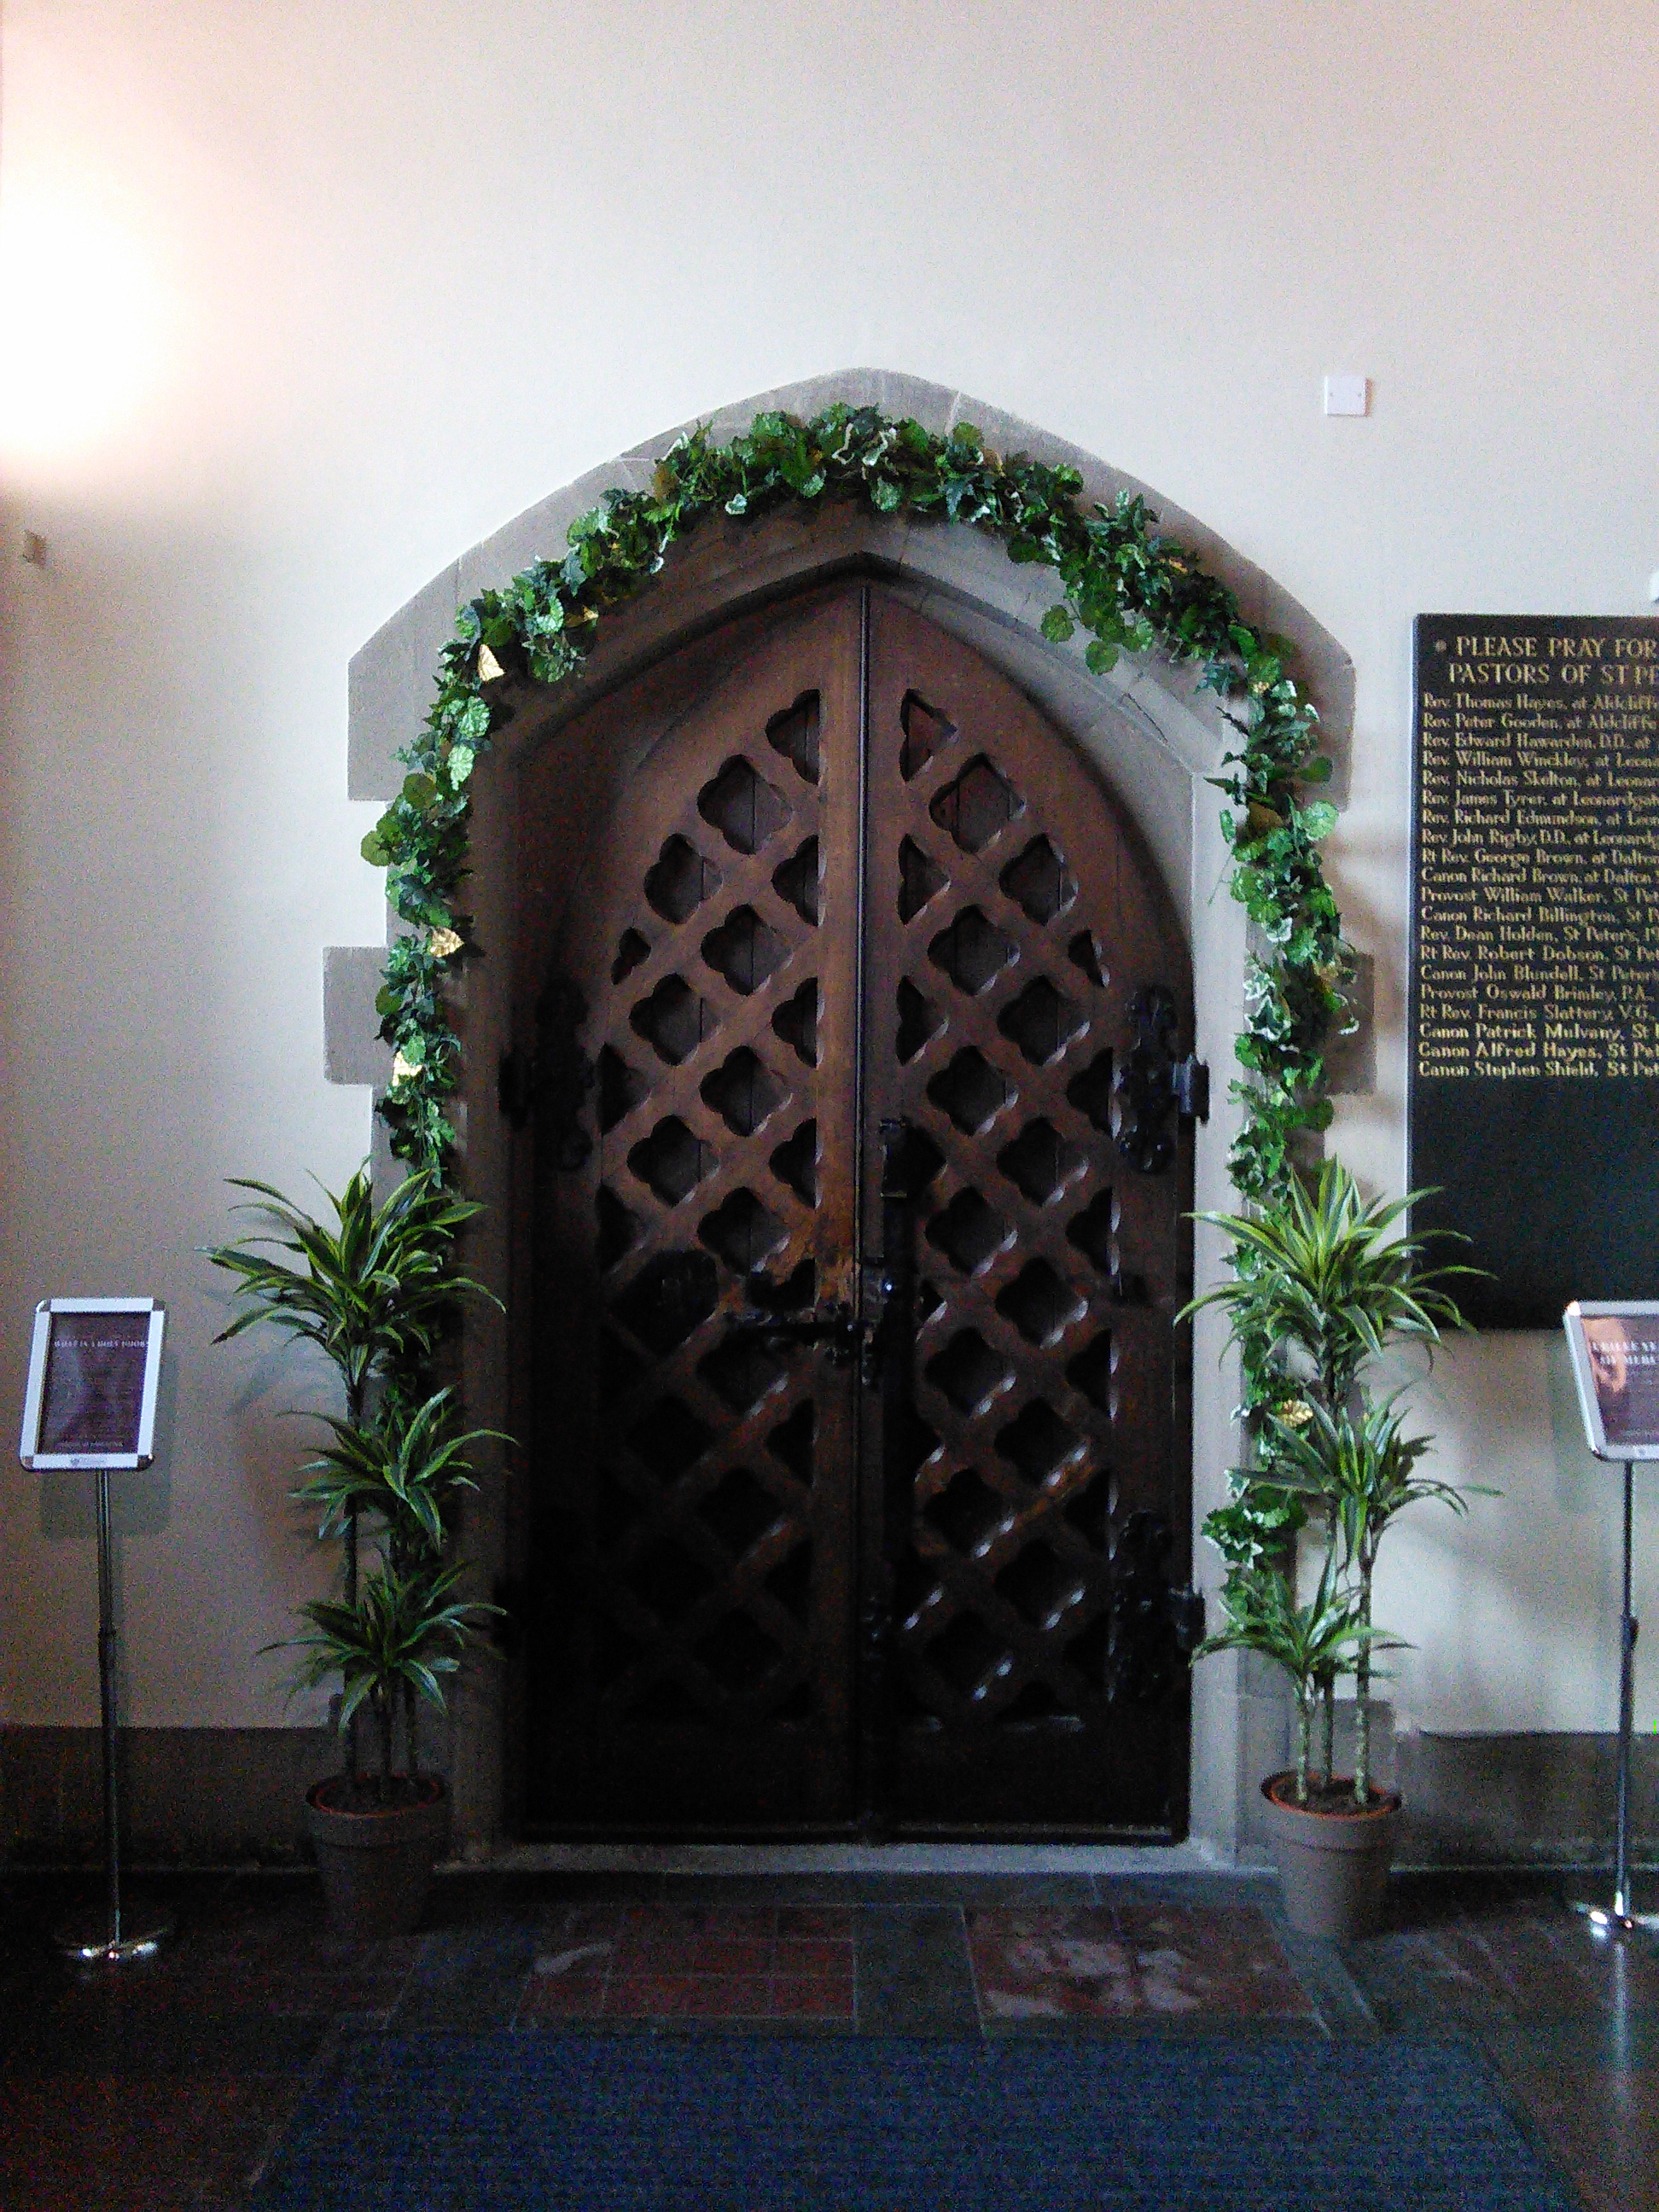 The Holy Door at the Cathedral